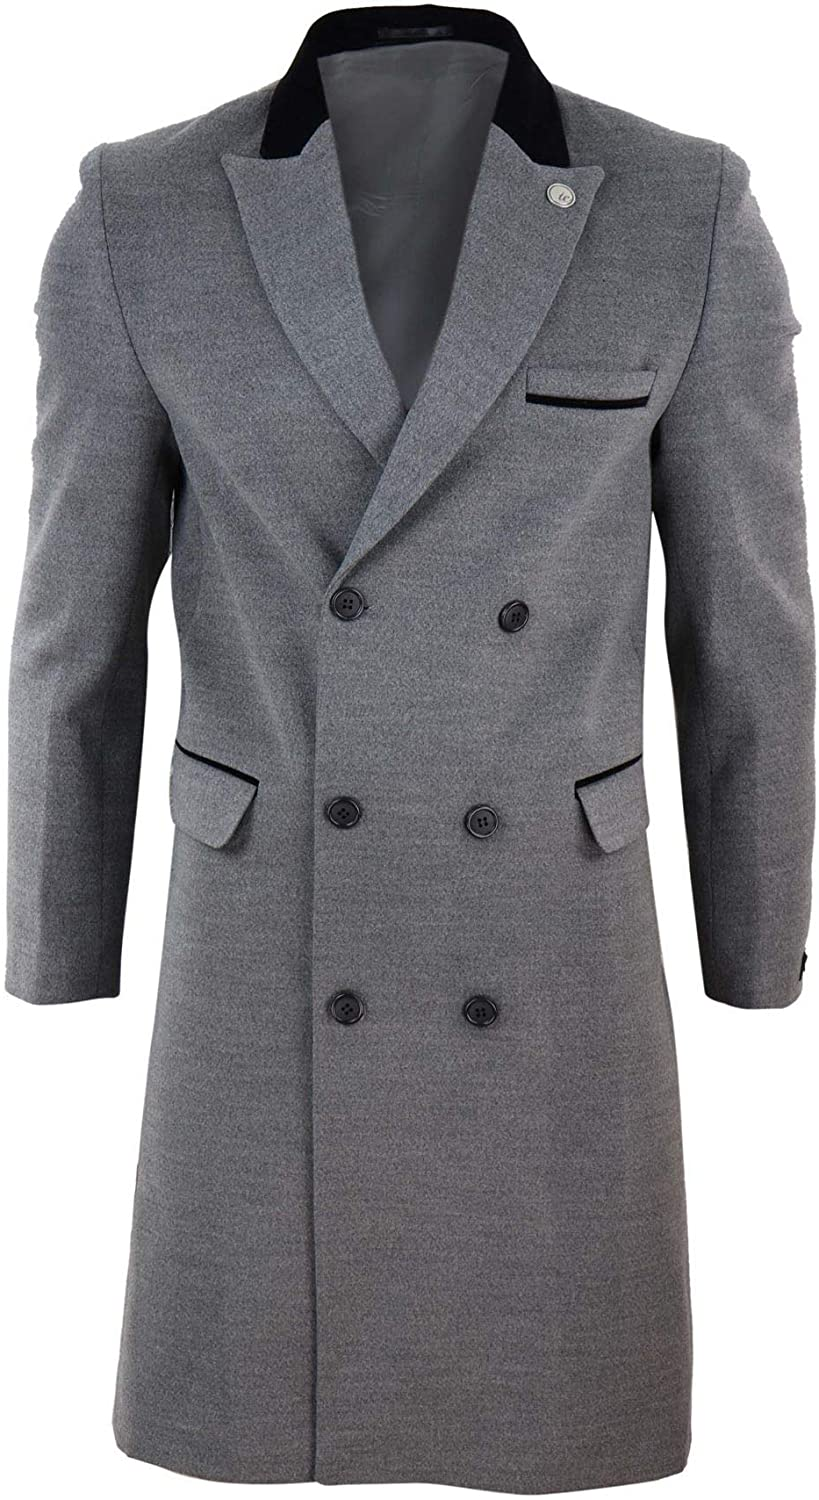 1920s Men's Fashion: What did men wear in the 1920s? TruClothing.com Mens 3/4 Long Double Breasted Crombie Overcoat Jacket Wool Coat Blinders £74.99 AT vintagedancer.com